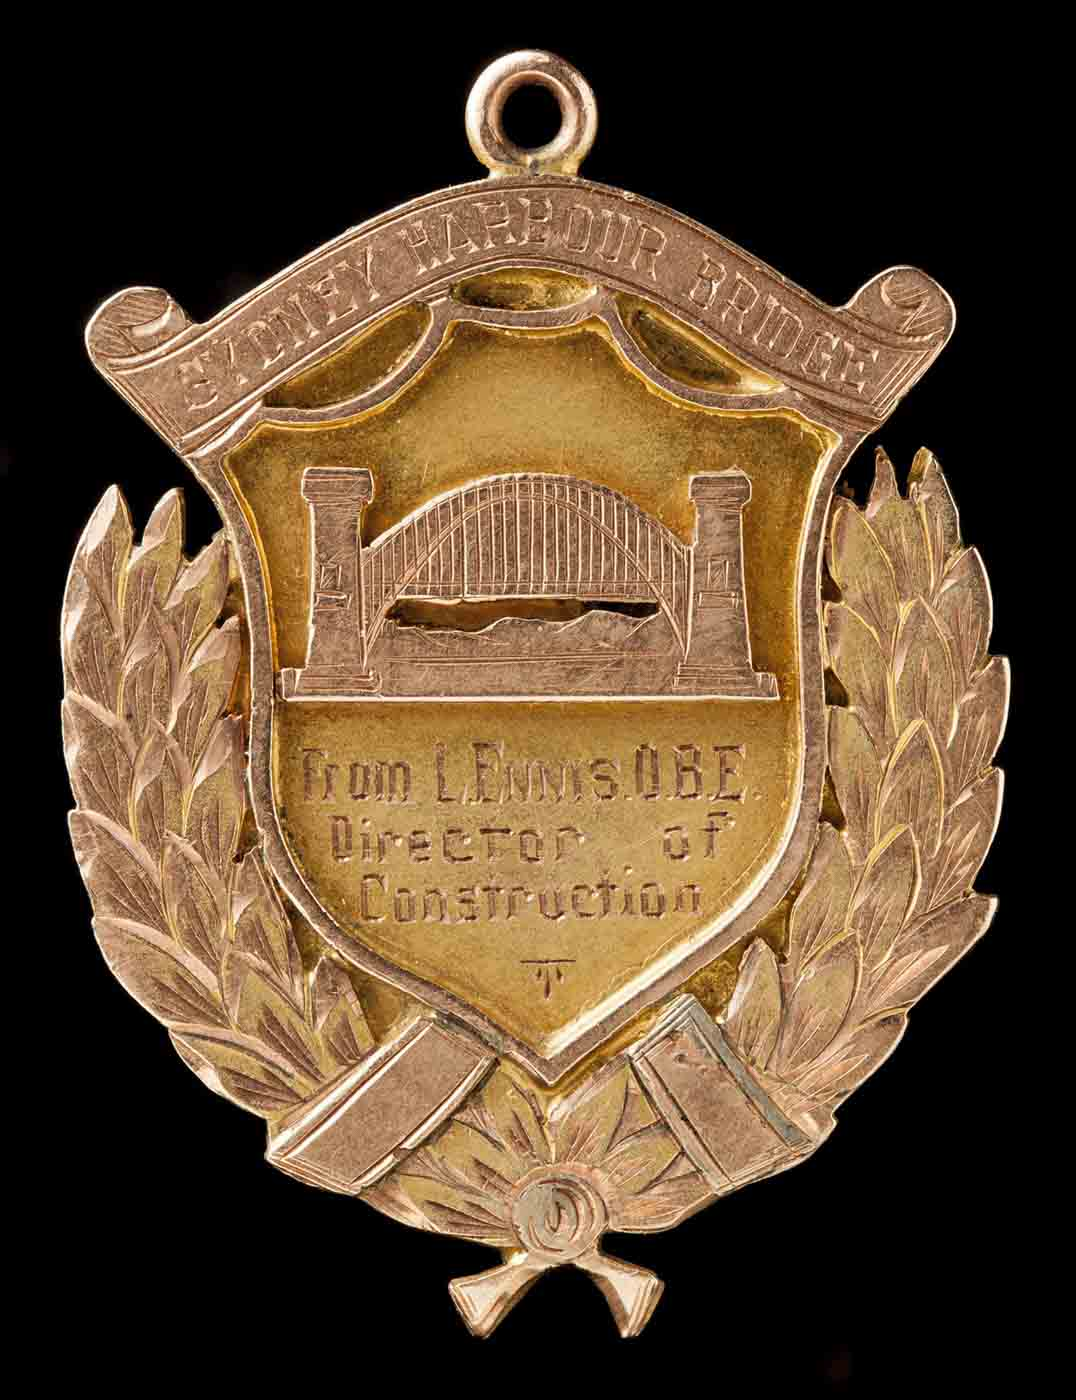 Faded gold-coloured metal badge with an image of the bridge and the words 'From L Ennis OBE, Director of Construction'. - click to view larger image